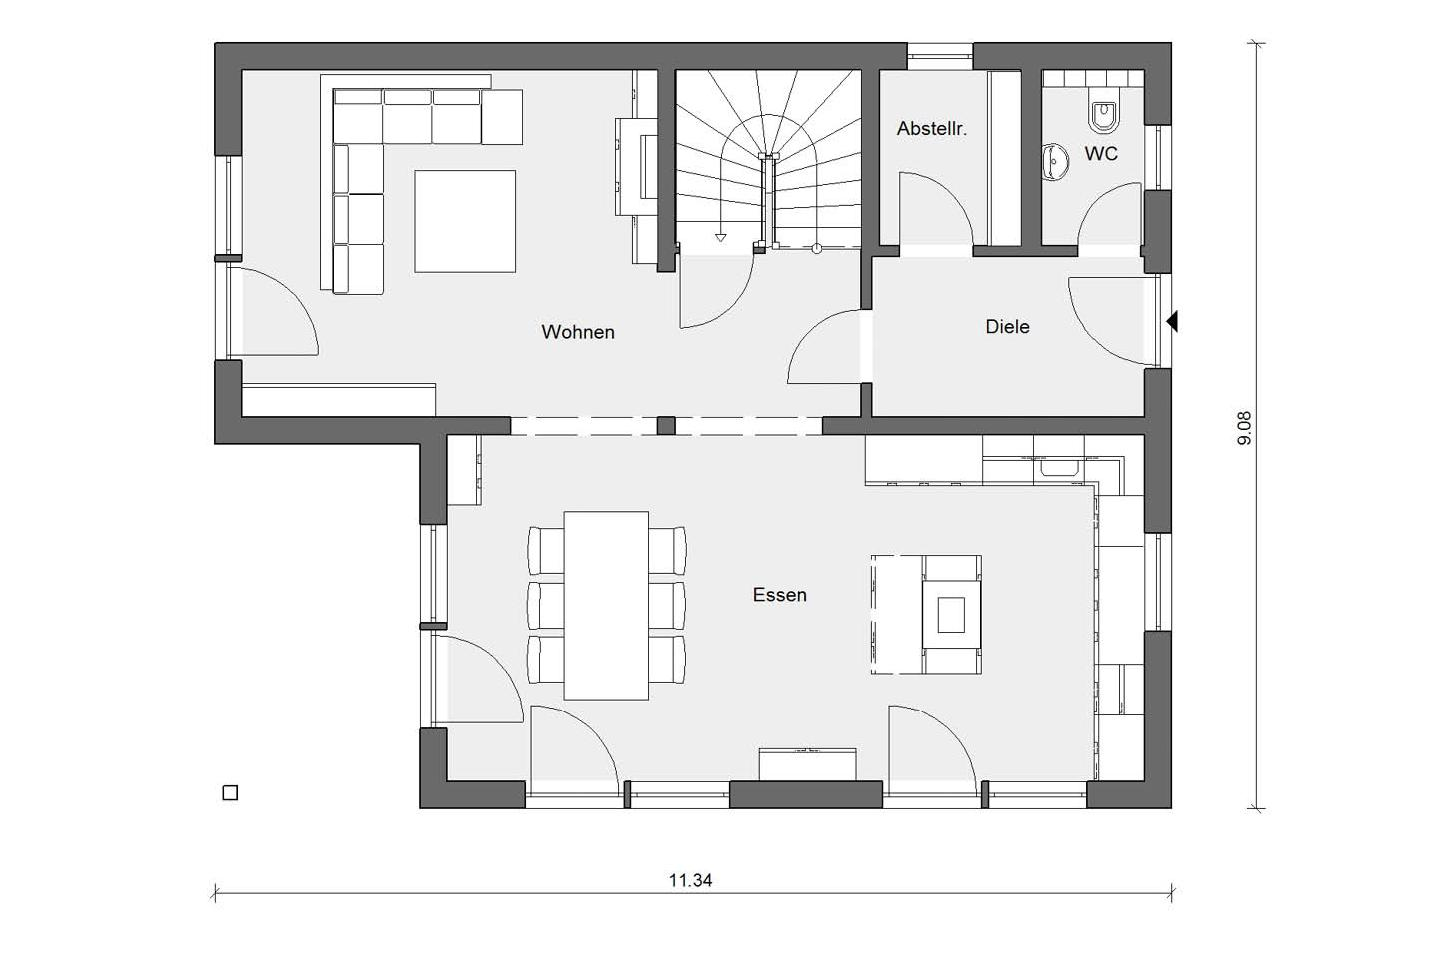 Ground floor layout E 15-153.2 Detached house with double garage